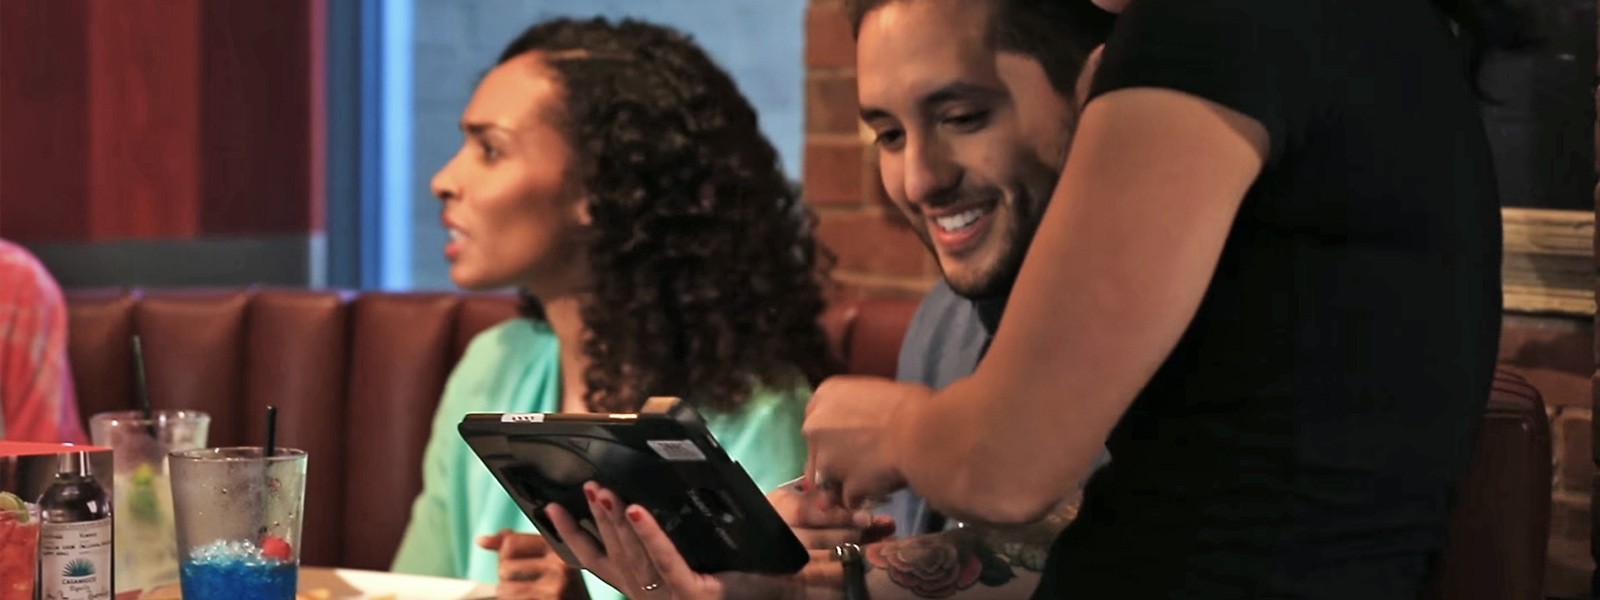 Customers interacting with payment device at table